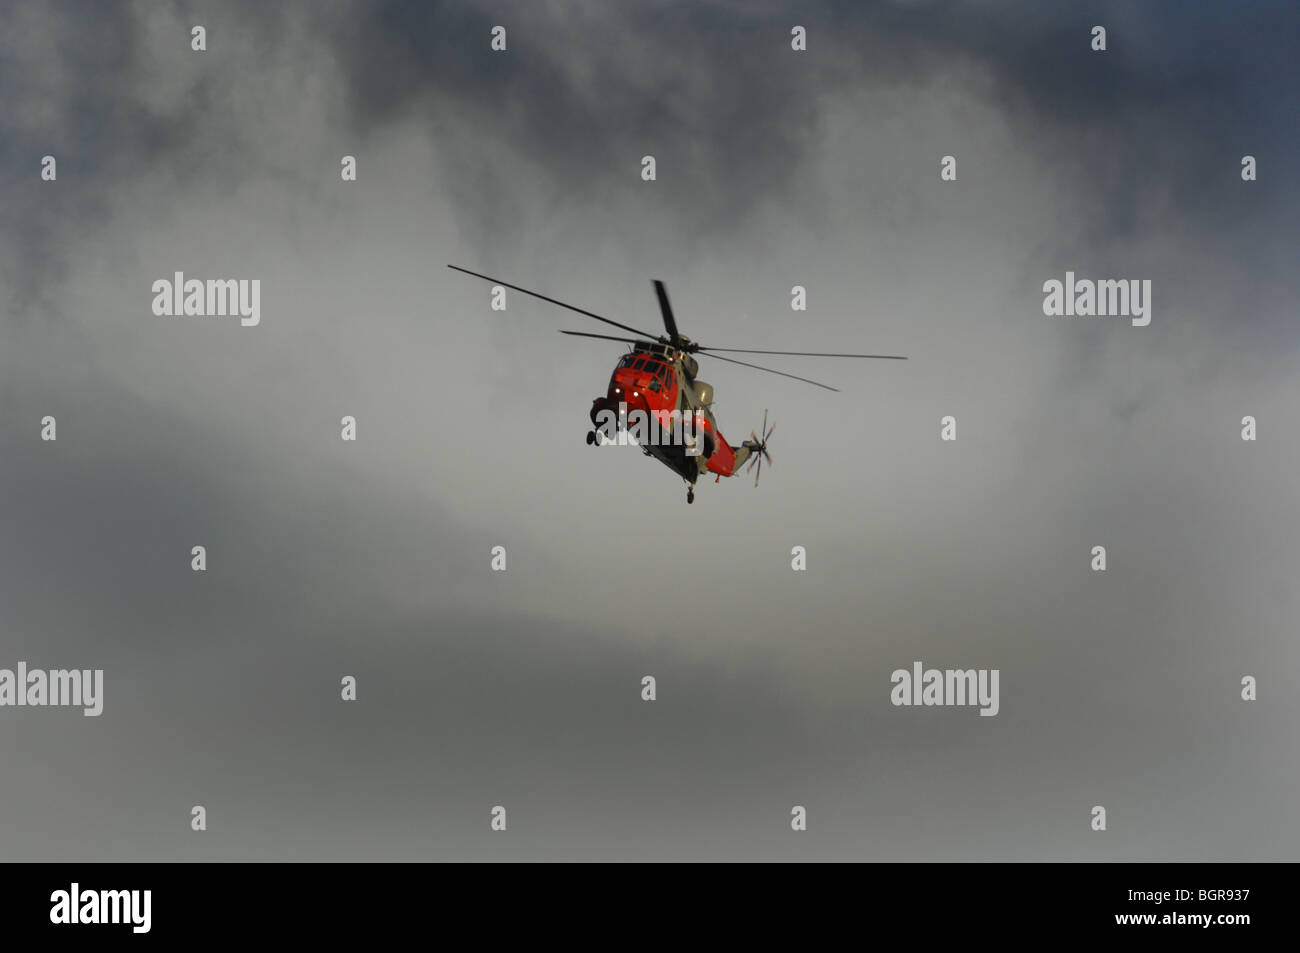 A Royal Navy rescue helicopter - Stock Image